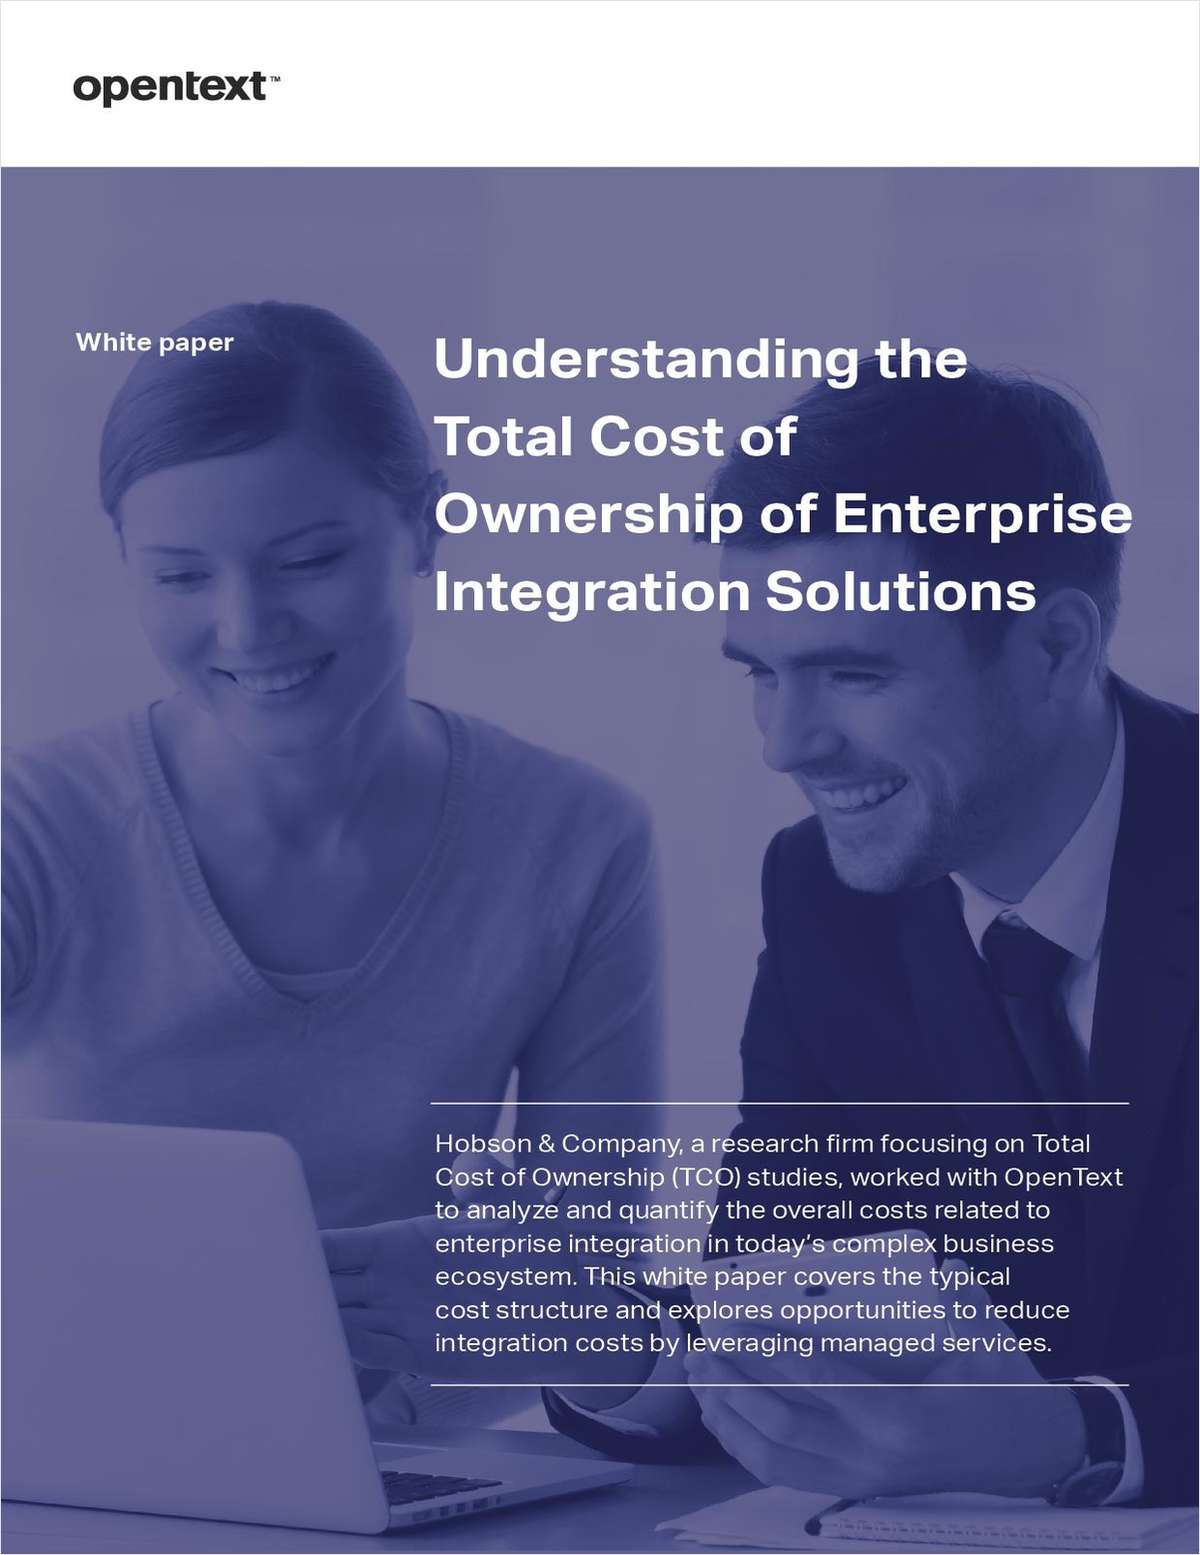 Understanding the Total Cost of Ownership of Enterprise Integration Solutions